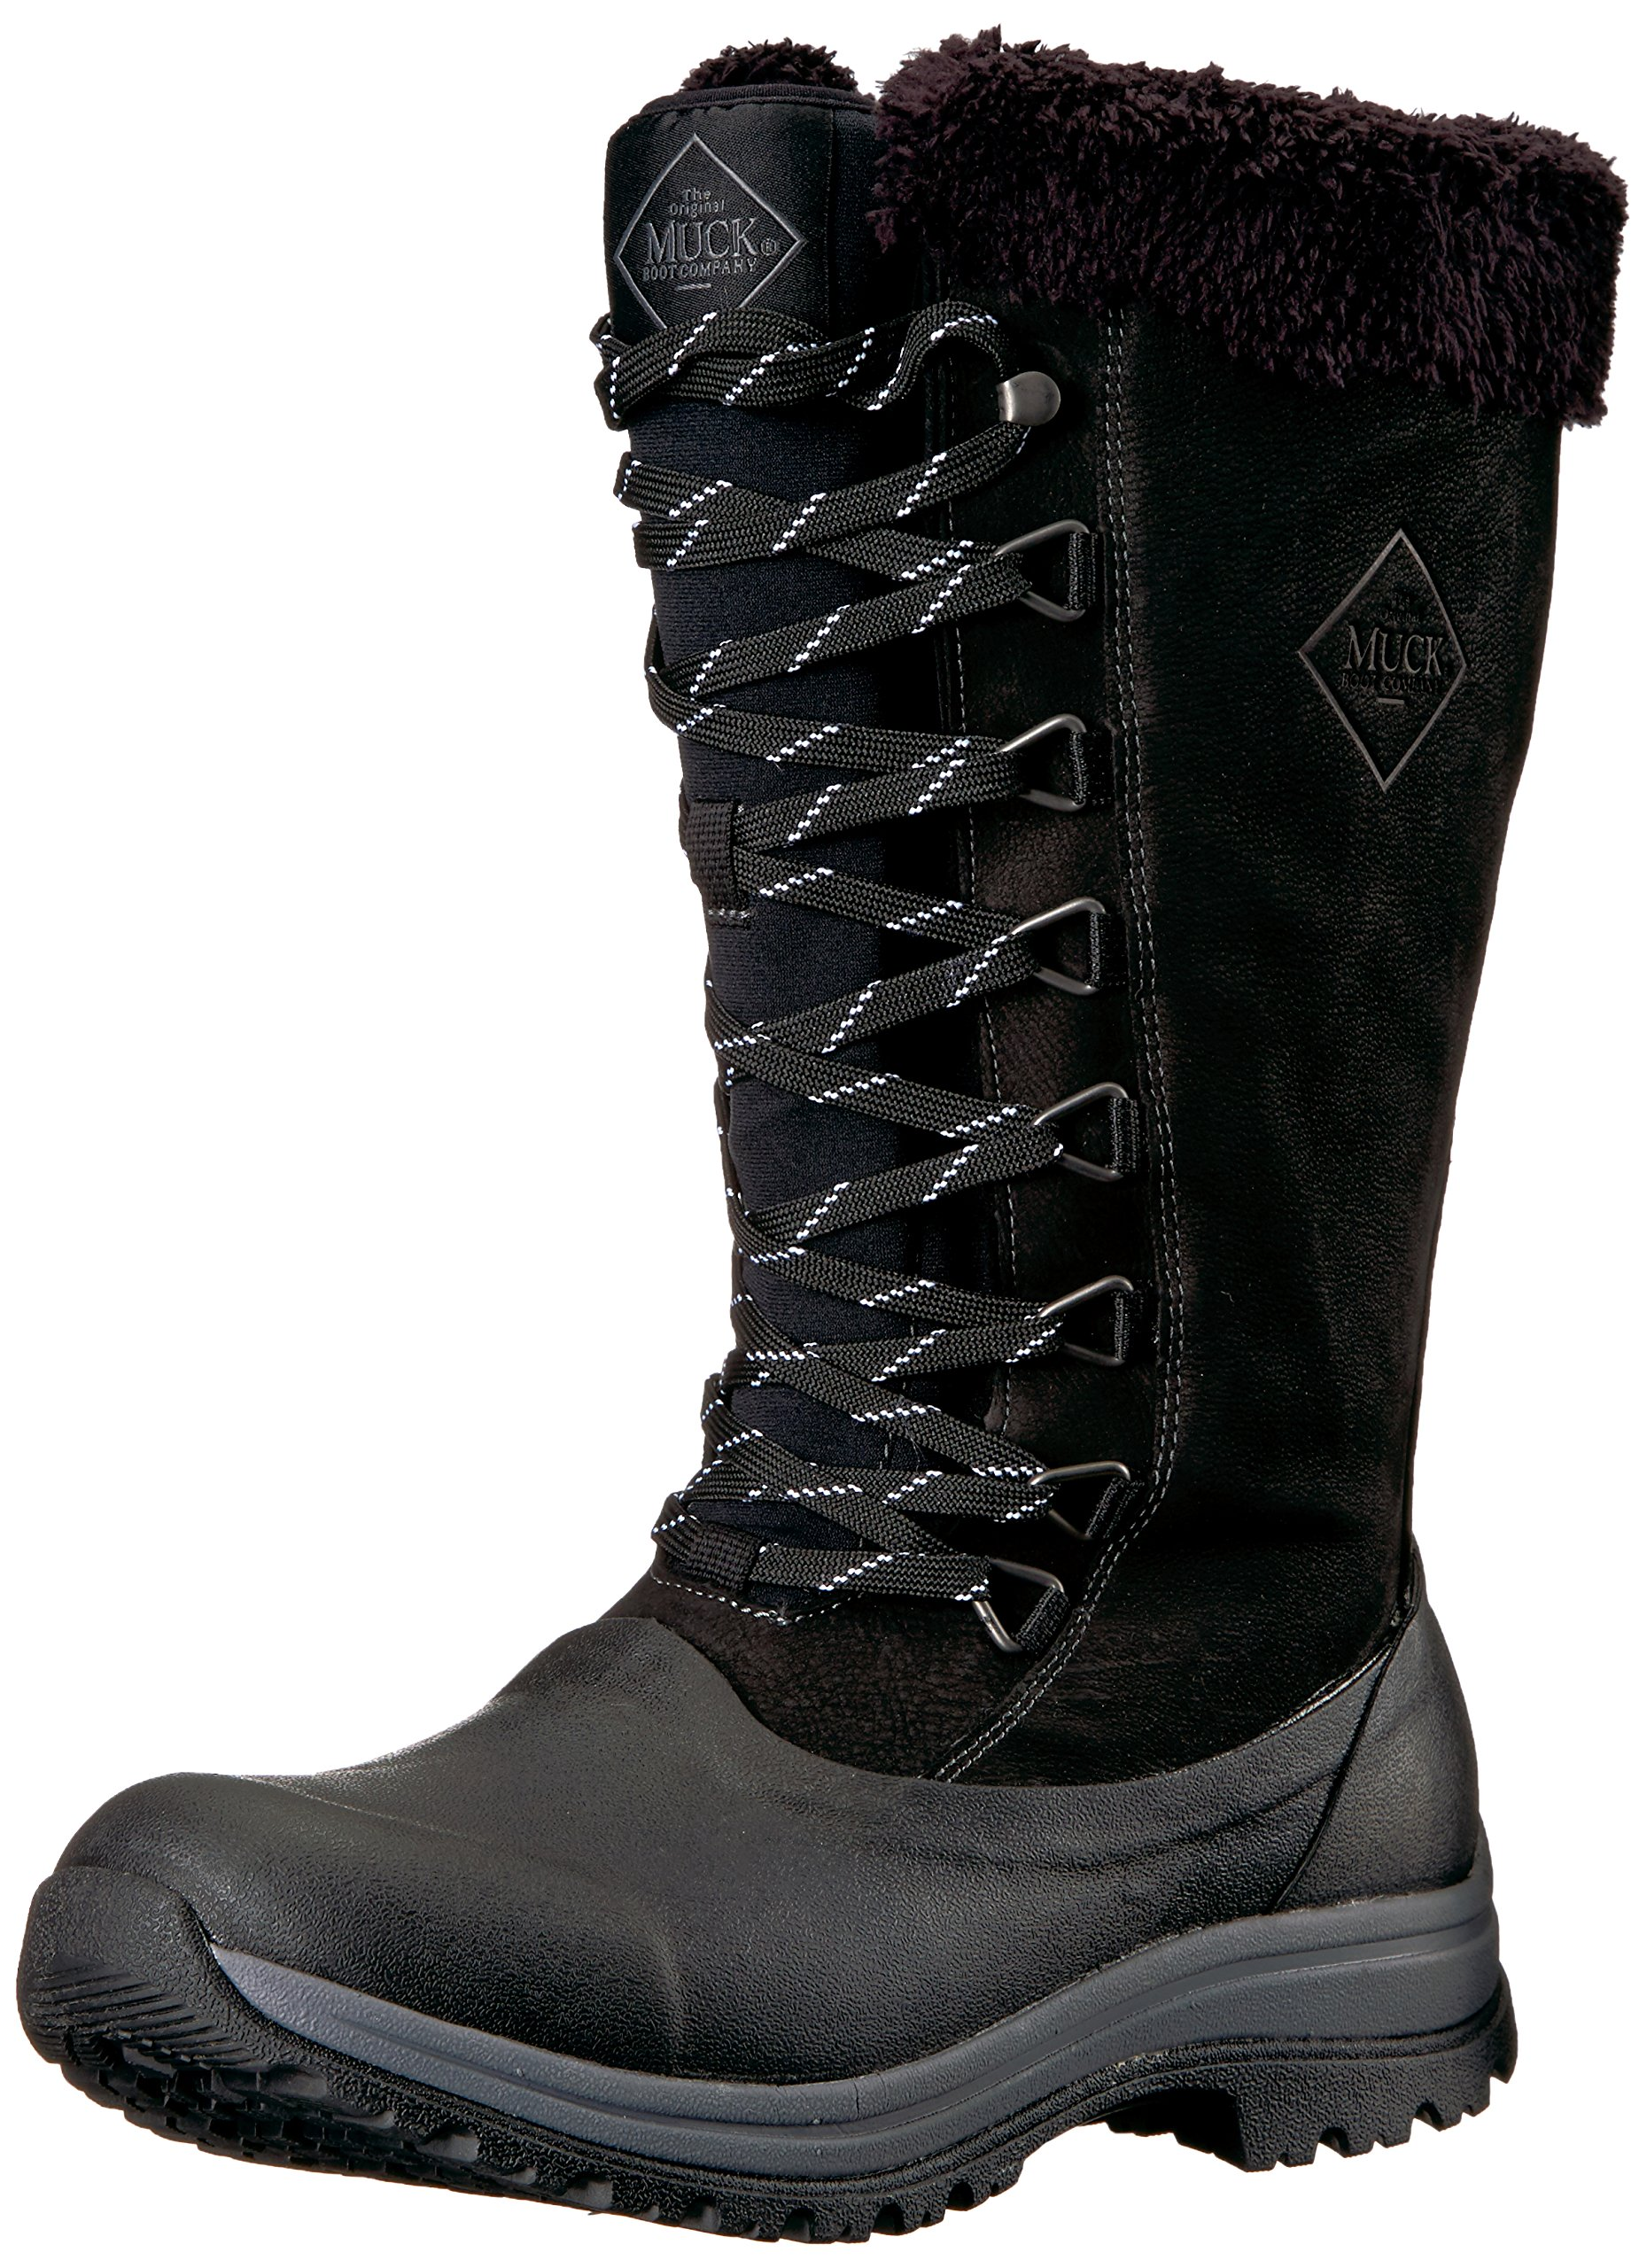 Muck Boot Women's Apres Lace Tall (13'') Work Boot, Black/Charcoal Gray, 8 M US